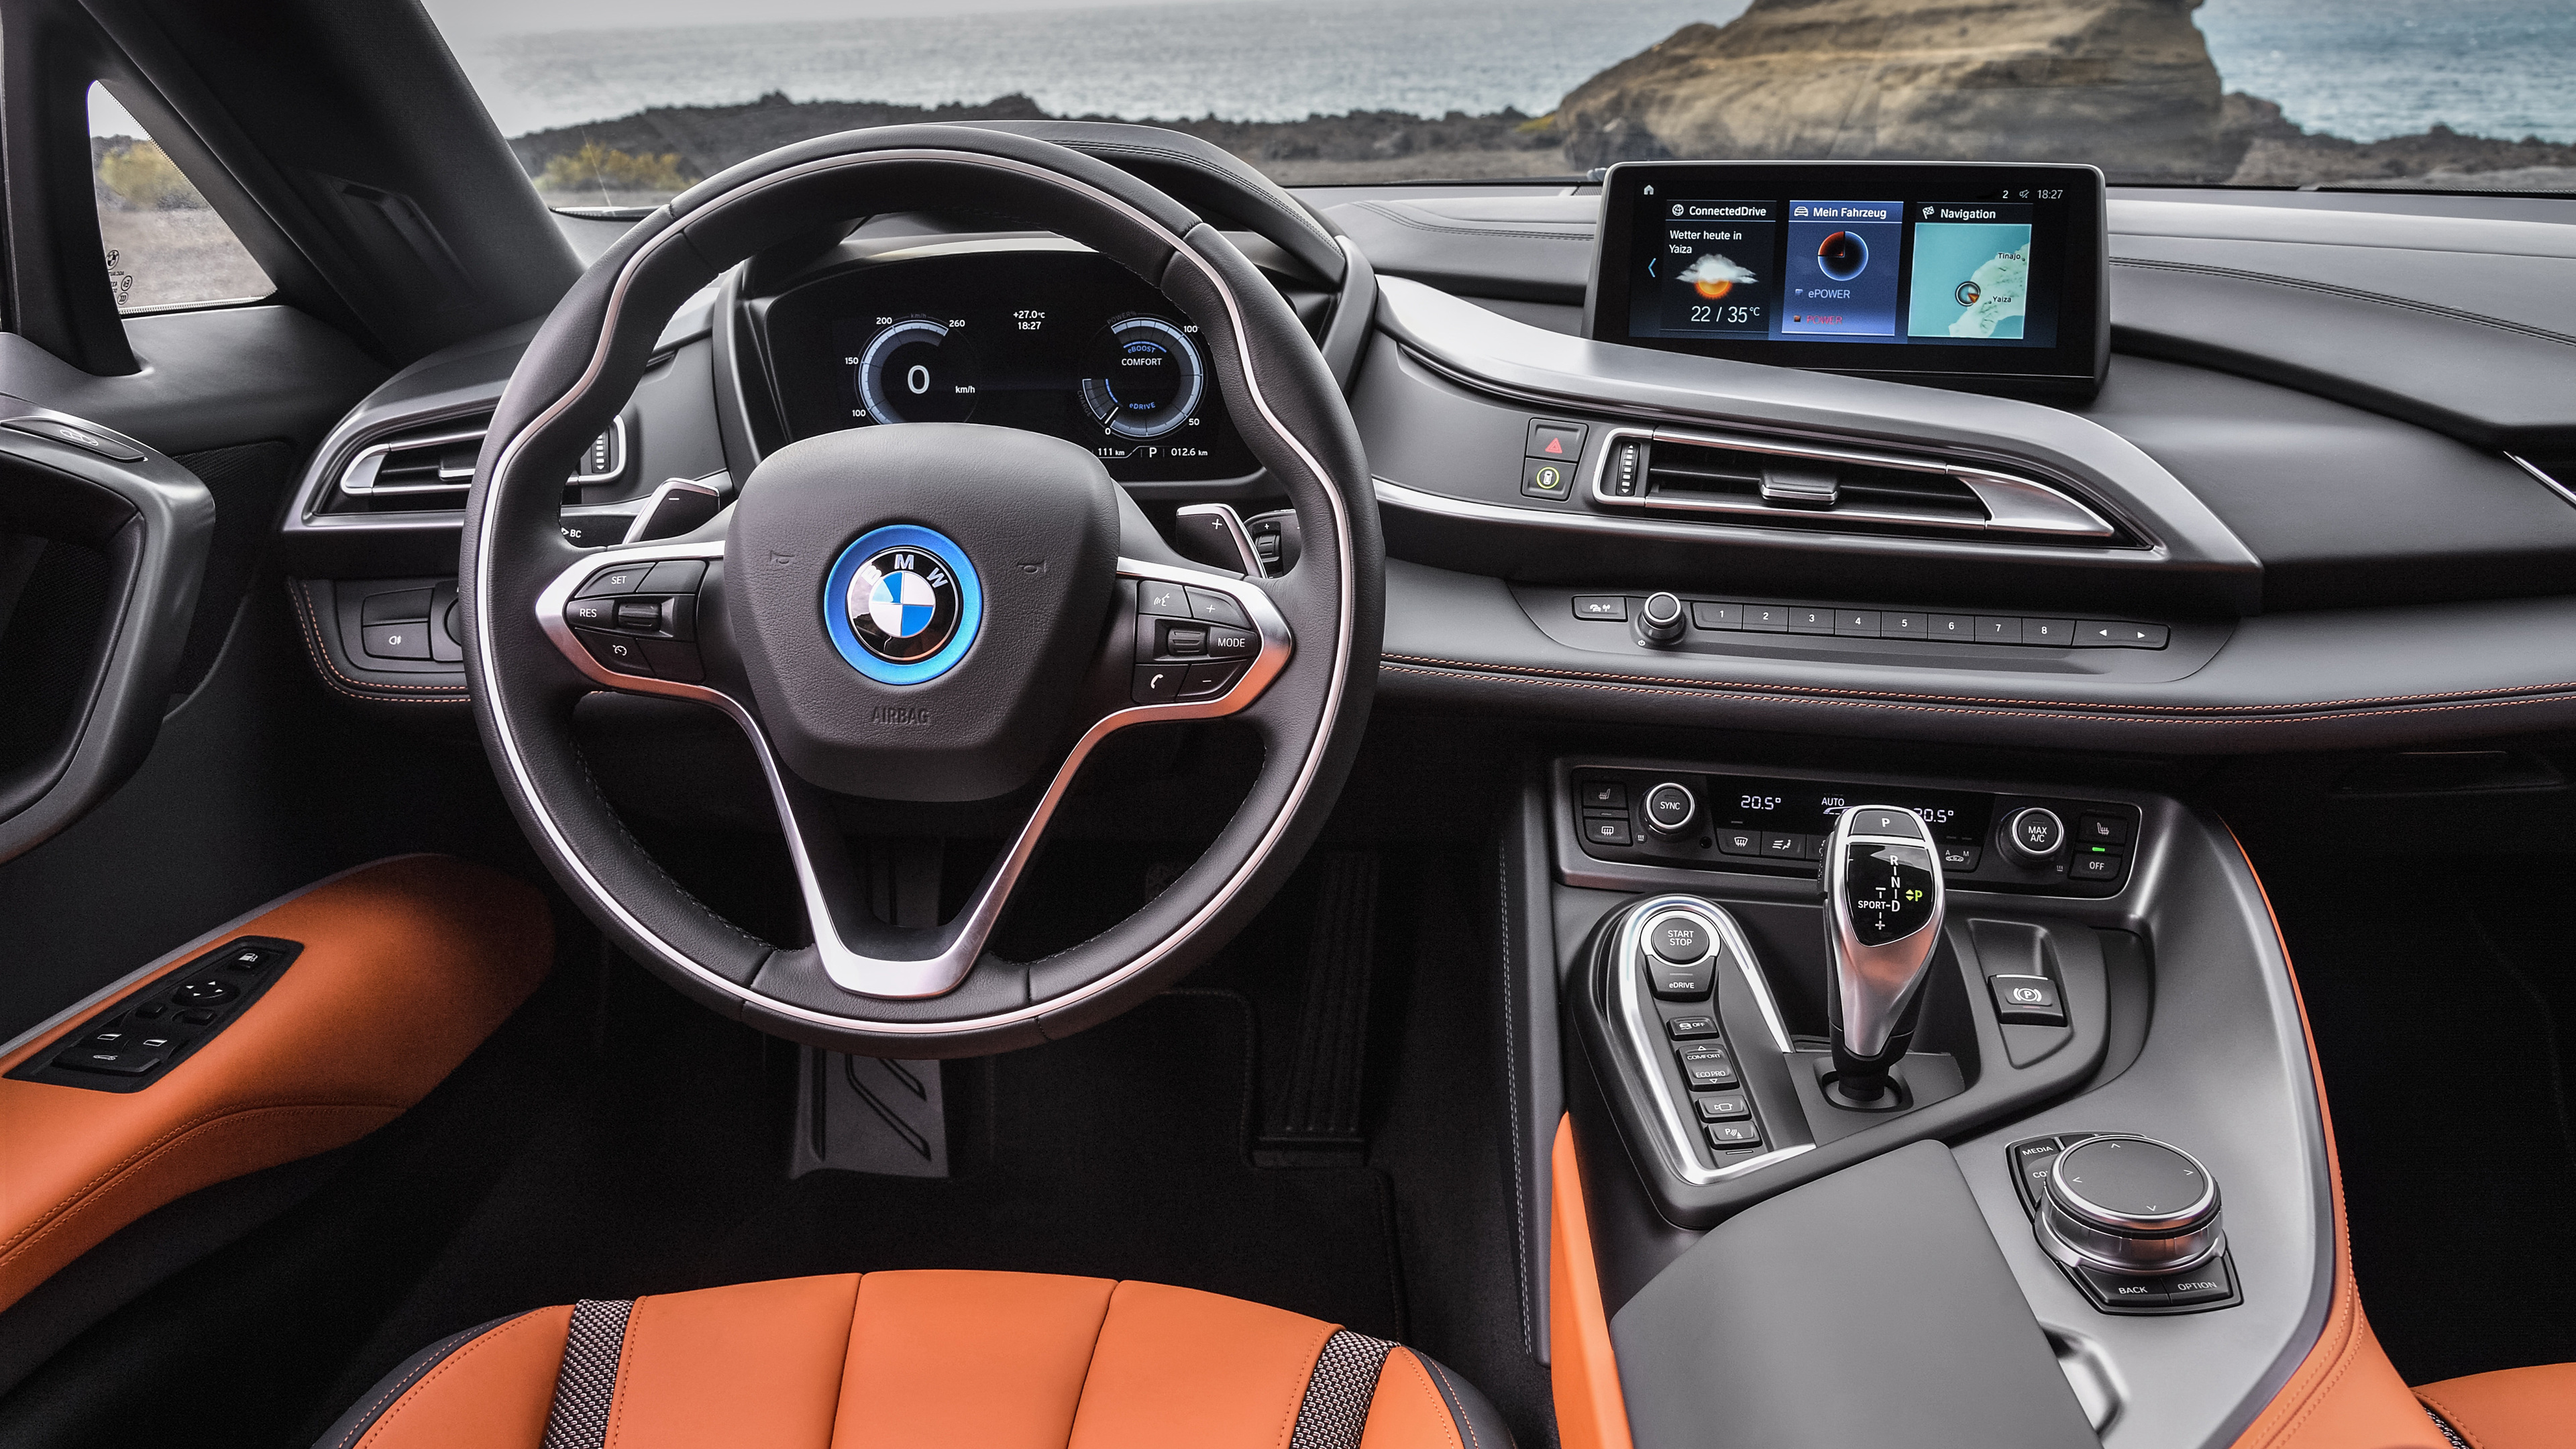 2018 bmw i8 roadster interior 1539108178 - 2018 BMW I8 Roadster Interior - interior wallpapers, hd-wallpapers, cars wallpapers, bmw wallpapers, bmw i8 wallpapers, 4k-wallpapers, 2018 cars wallpapers